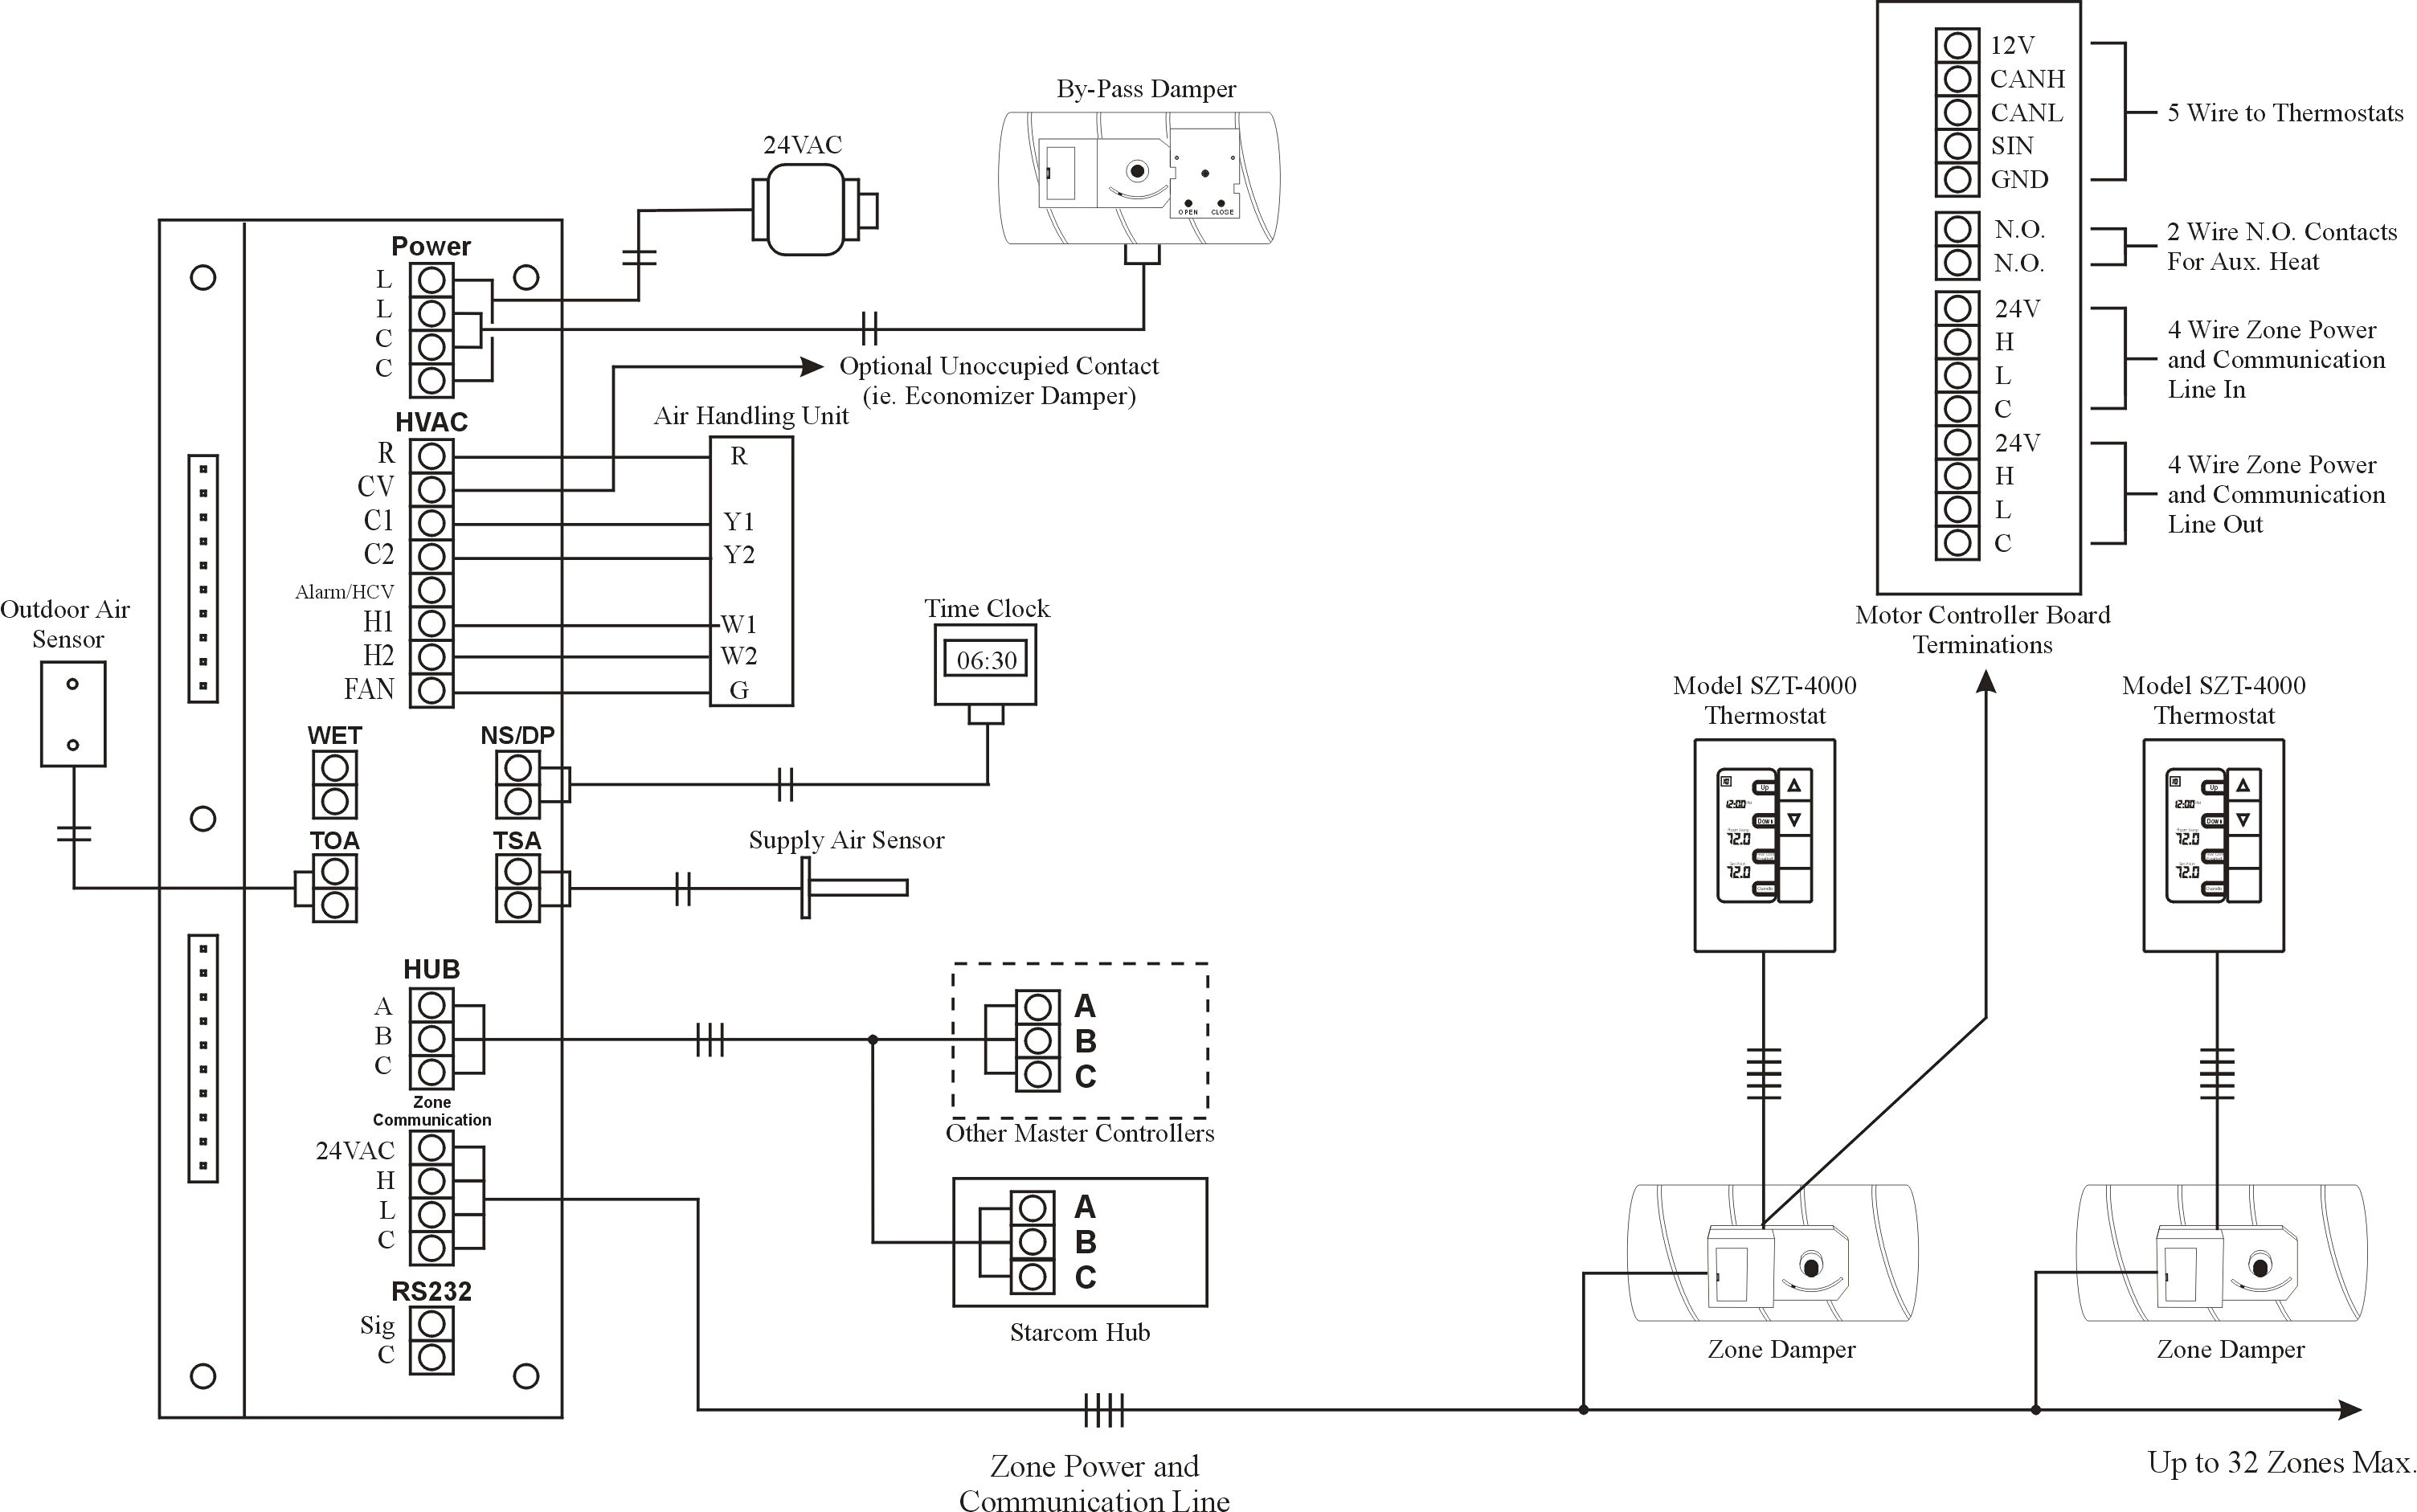 fire alarm control panel wiring diagram | free wiring diagram car alarm siren wiring diagram alarm panel wiring diagram